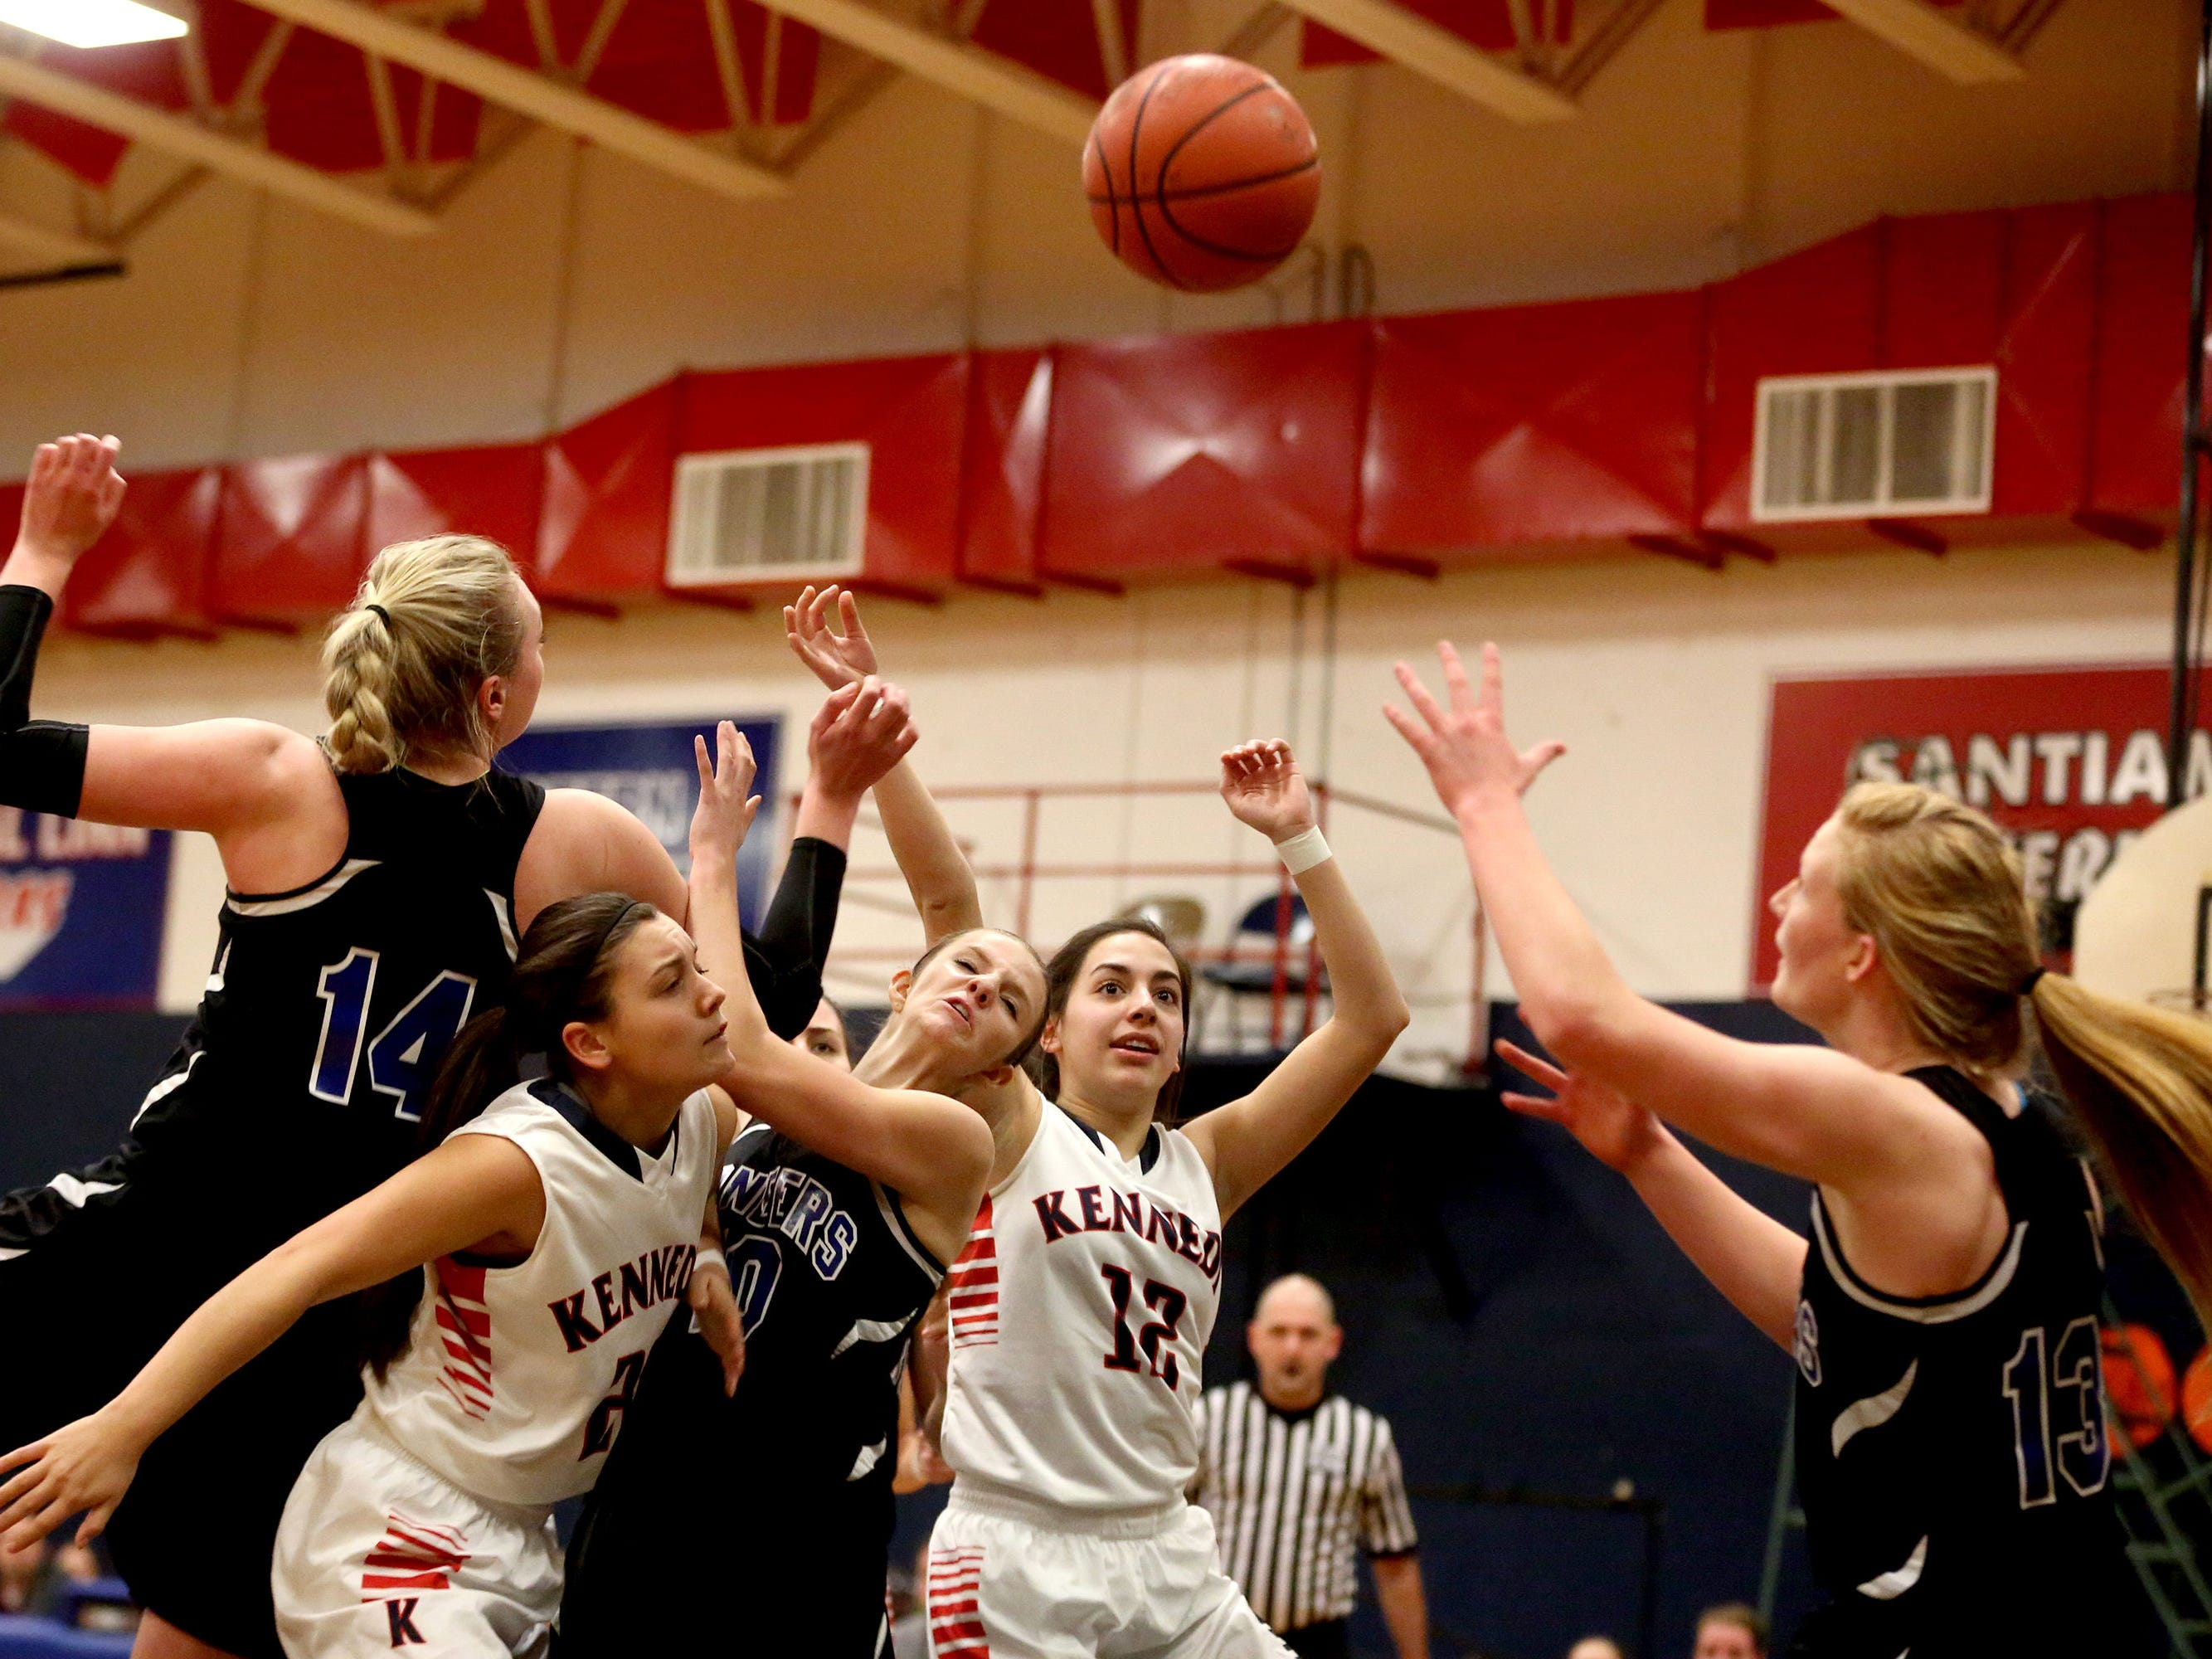 From left, Western Mennonite's Emma Gibb (14), Kennedy's Rebecca Pranger (20), Western Mennonite's Amy Rausch (10), Kennedy's Lakin Susee (12), and Western Mennnonite's Madison Hull (13) fight for a loose ball in the first half of the Western Mennonite vs. Kennedy girl's basketball game at Kennedy High School in Mt. Angel, Ore., on Tuesday, Jan. 6, 2015. Western Mennonite won the game 57-41.